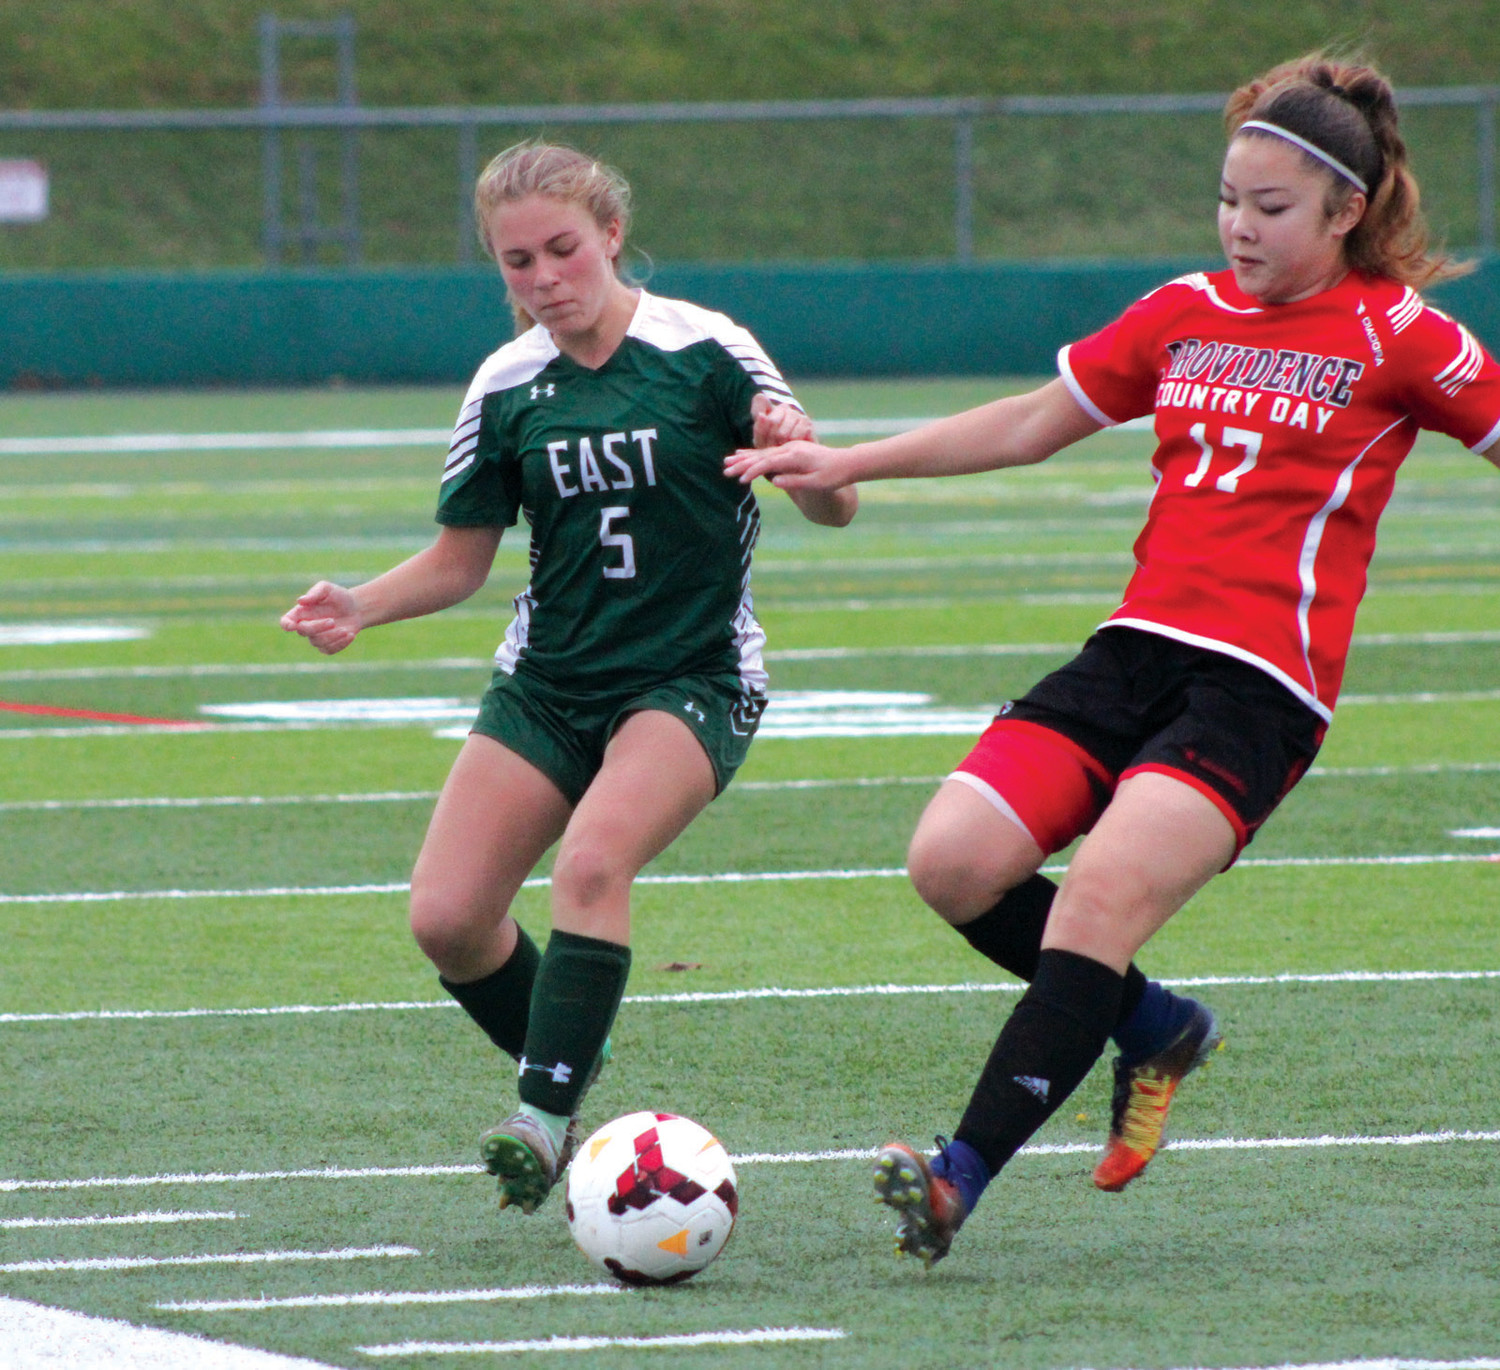 ON PITCH: East's Jenna Lees battles for the ball.